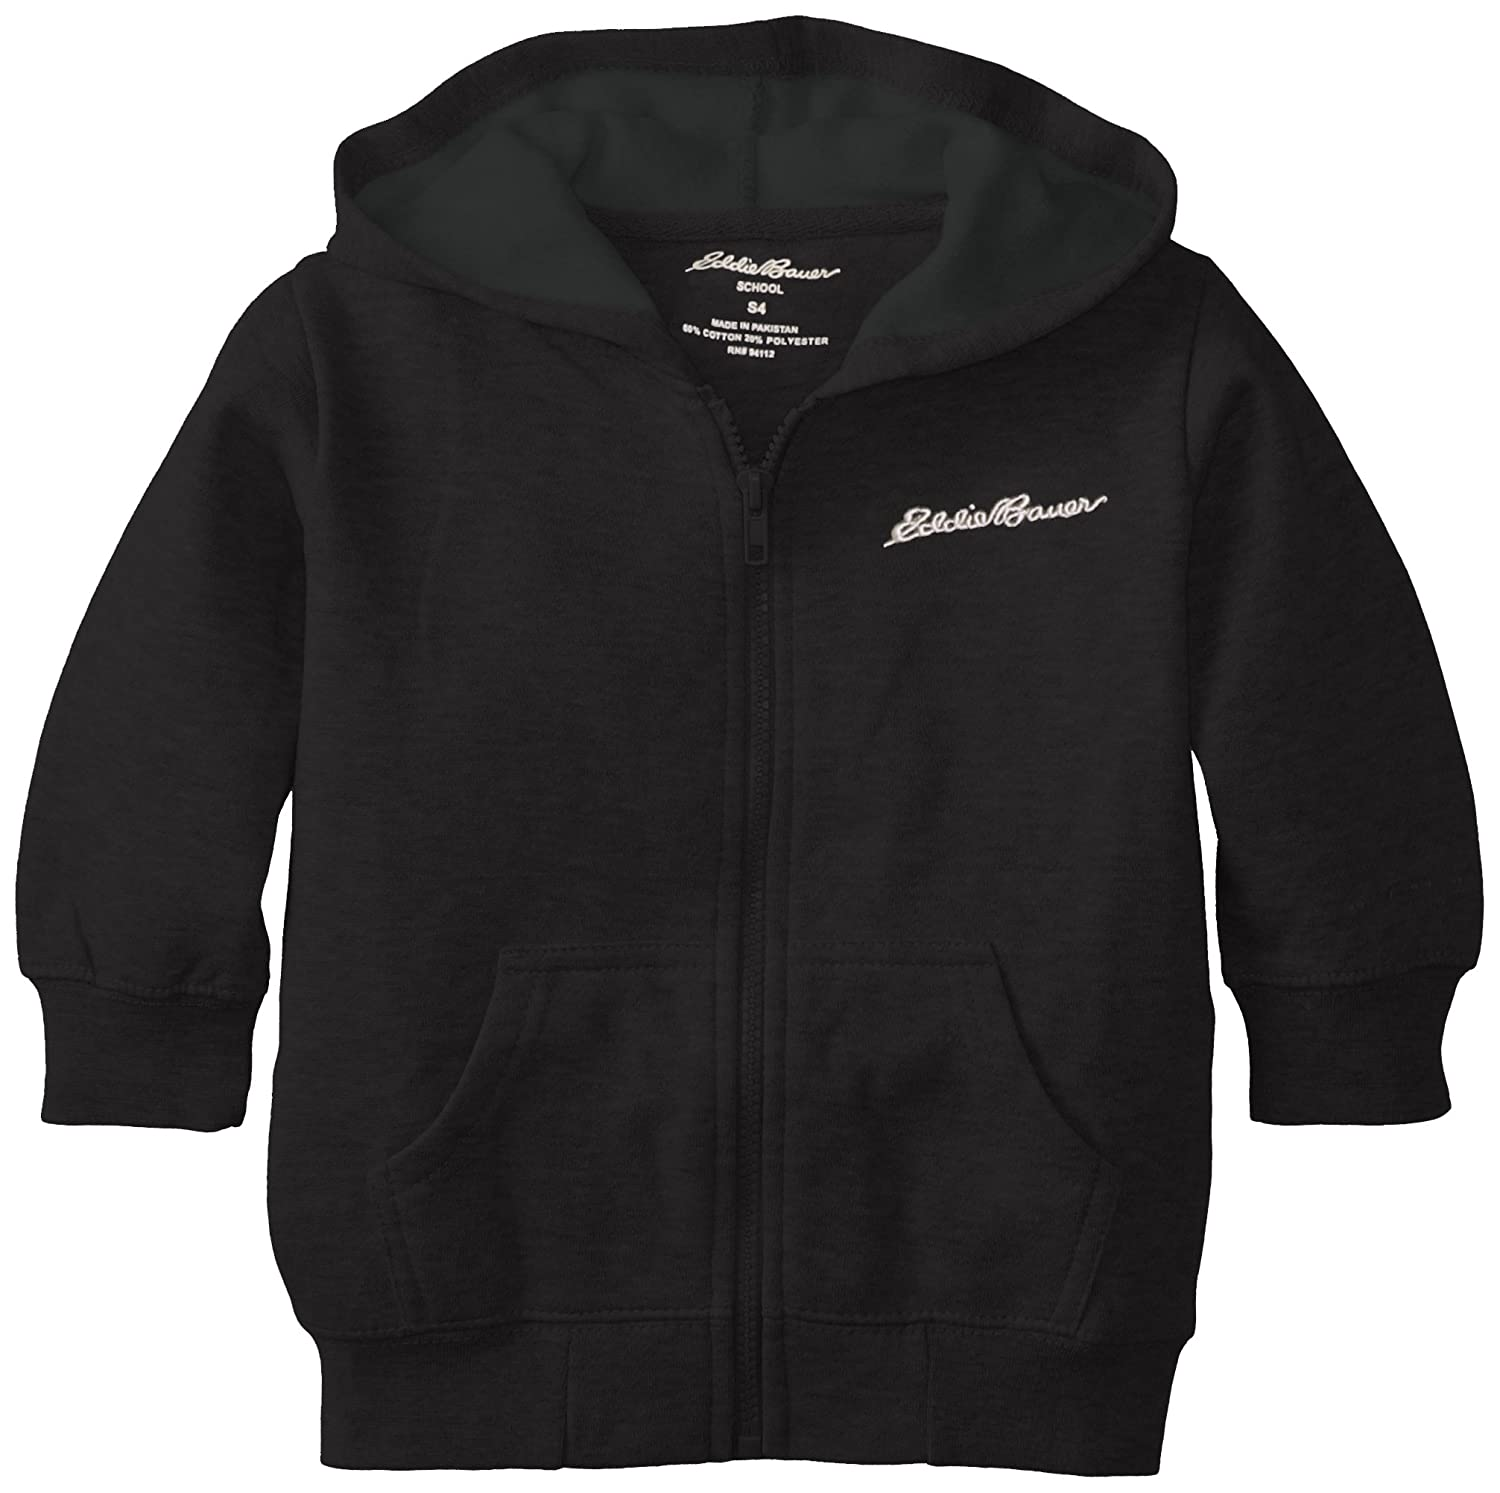 Eddie Bauer Boys Little Fleece Hoodie Eddie Bauer Uniforms Boys 2-7 UY26 More Styles Available